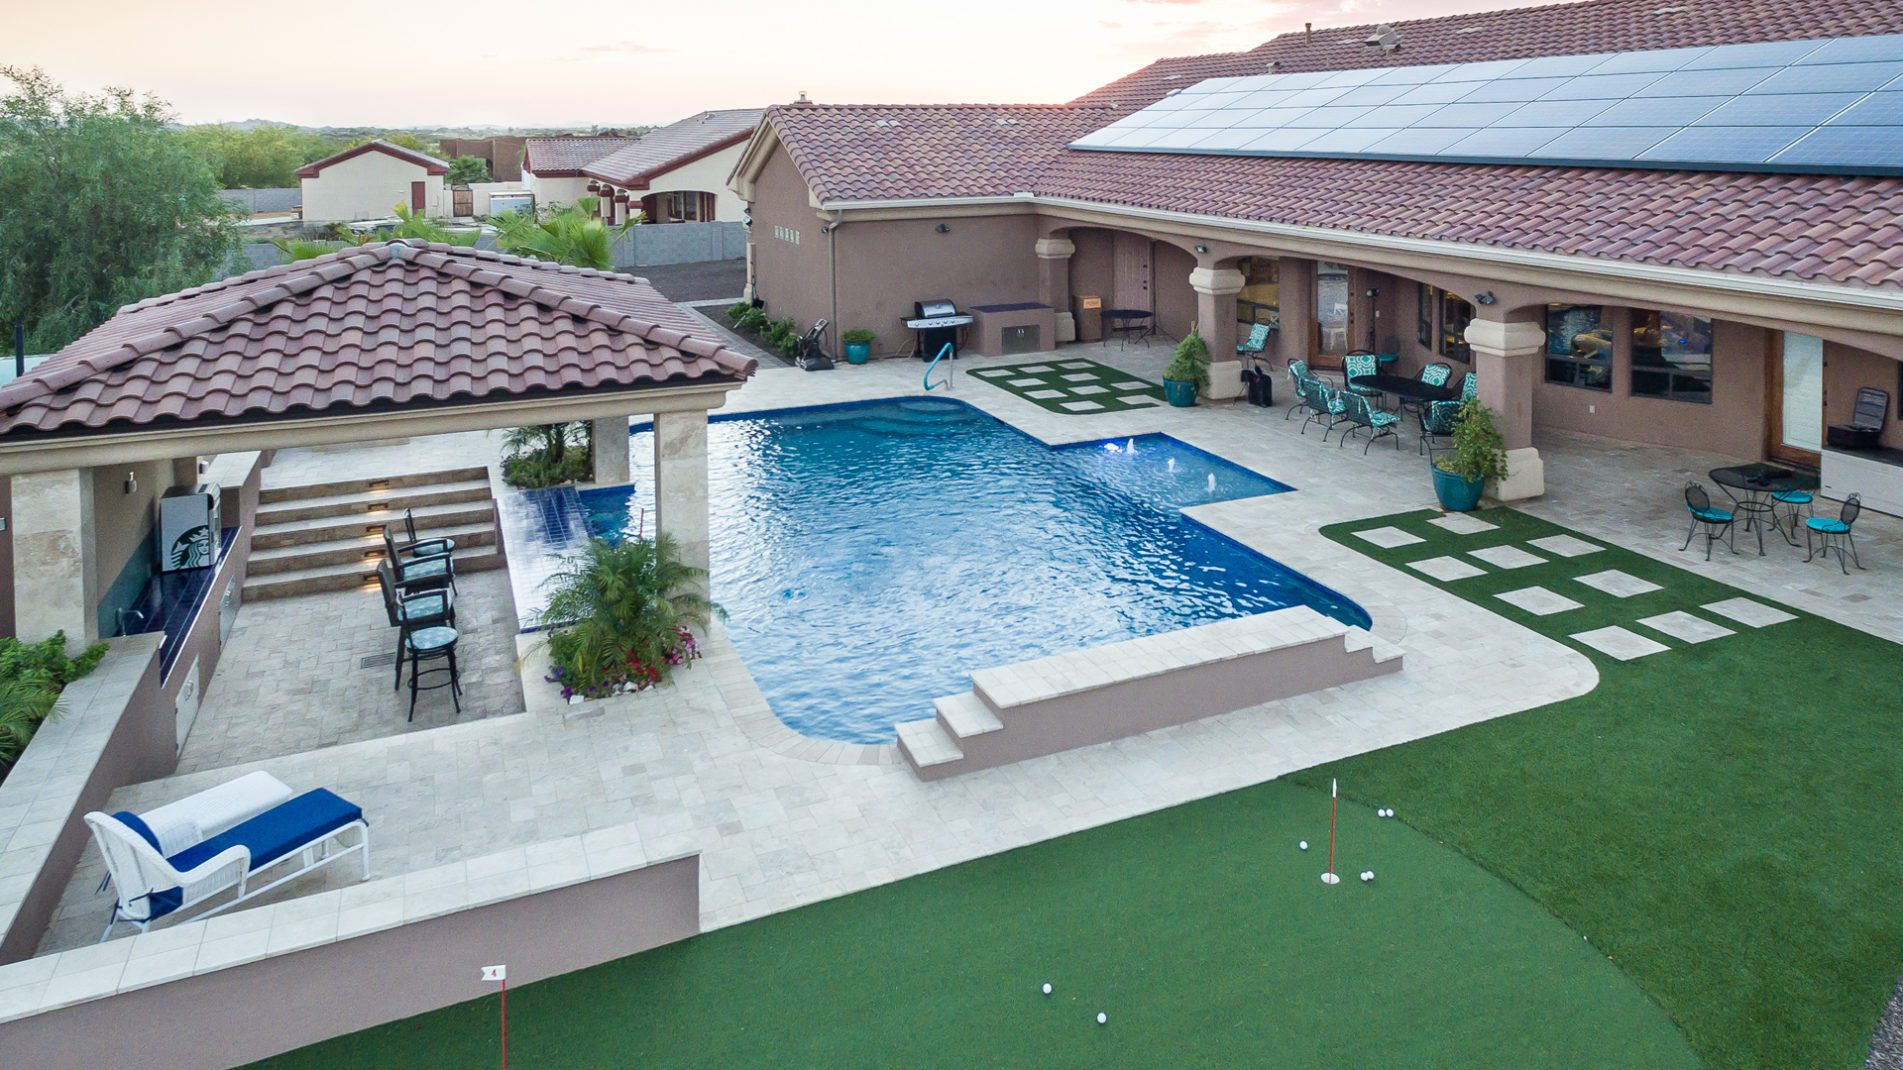 Retro Classic Clubhouse Pool Drone View